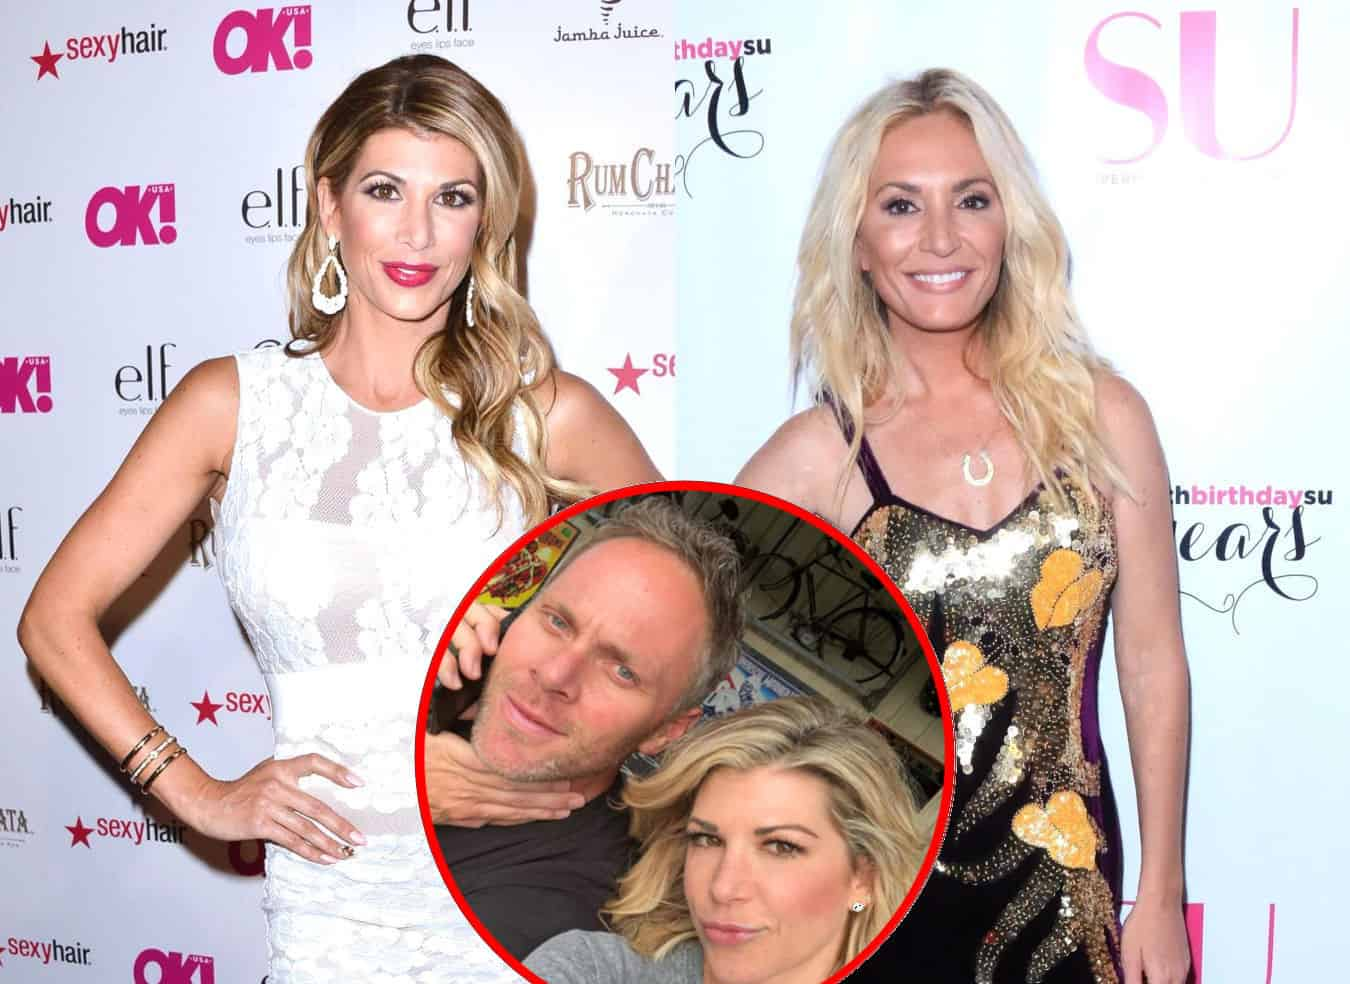 RHOC's Alexis Bellino Calls Out the Below Deck Crew for Throwing Shade at Her PDA With Boyfriend Andy Bohn, See Her Shady Tweet as Kate Chastain Responds